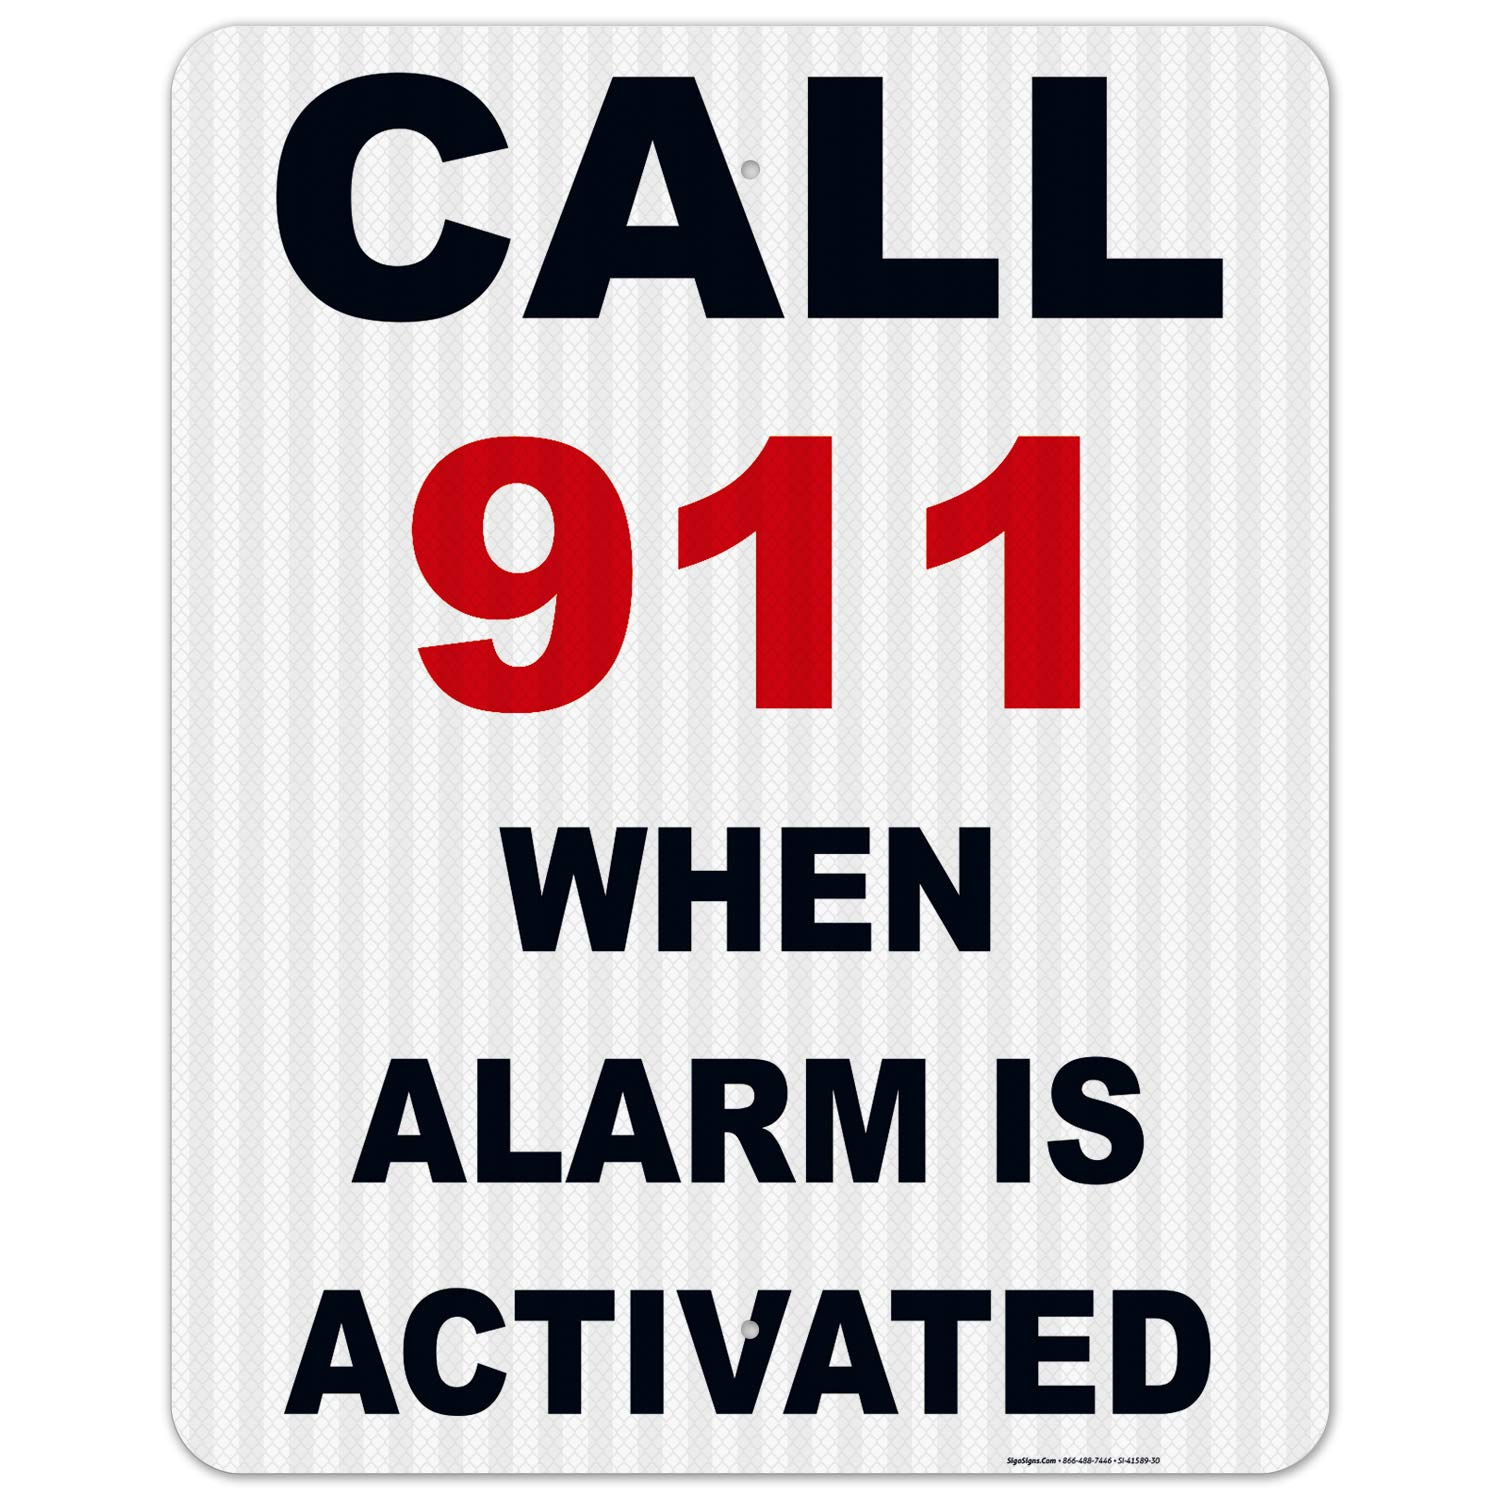 Call 4 years warranty 911 When Alarm is Large-scale sale Activated Sign EGP Refl Inches 24x30 3M